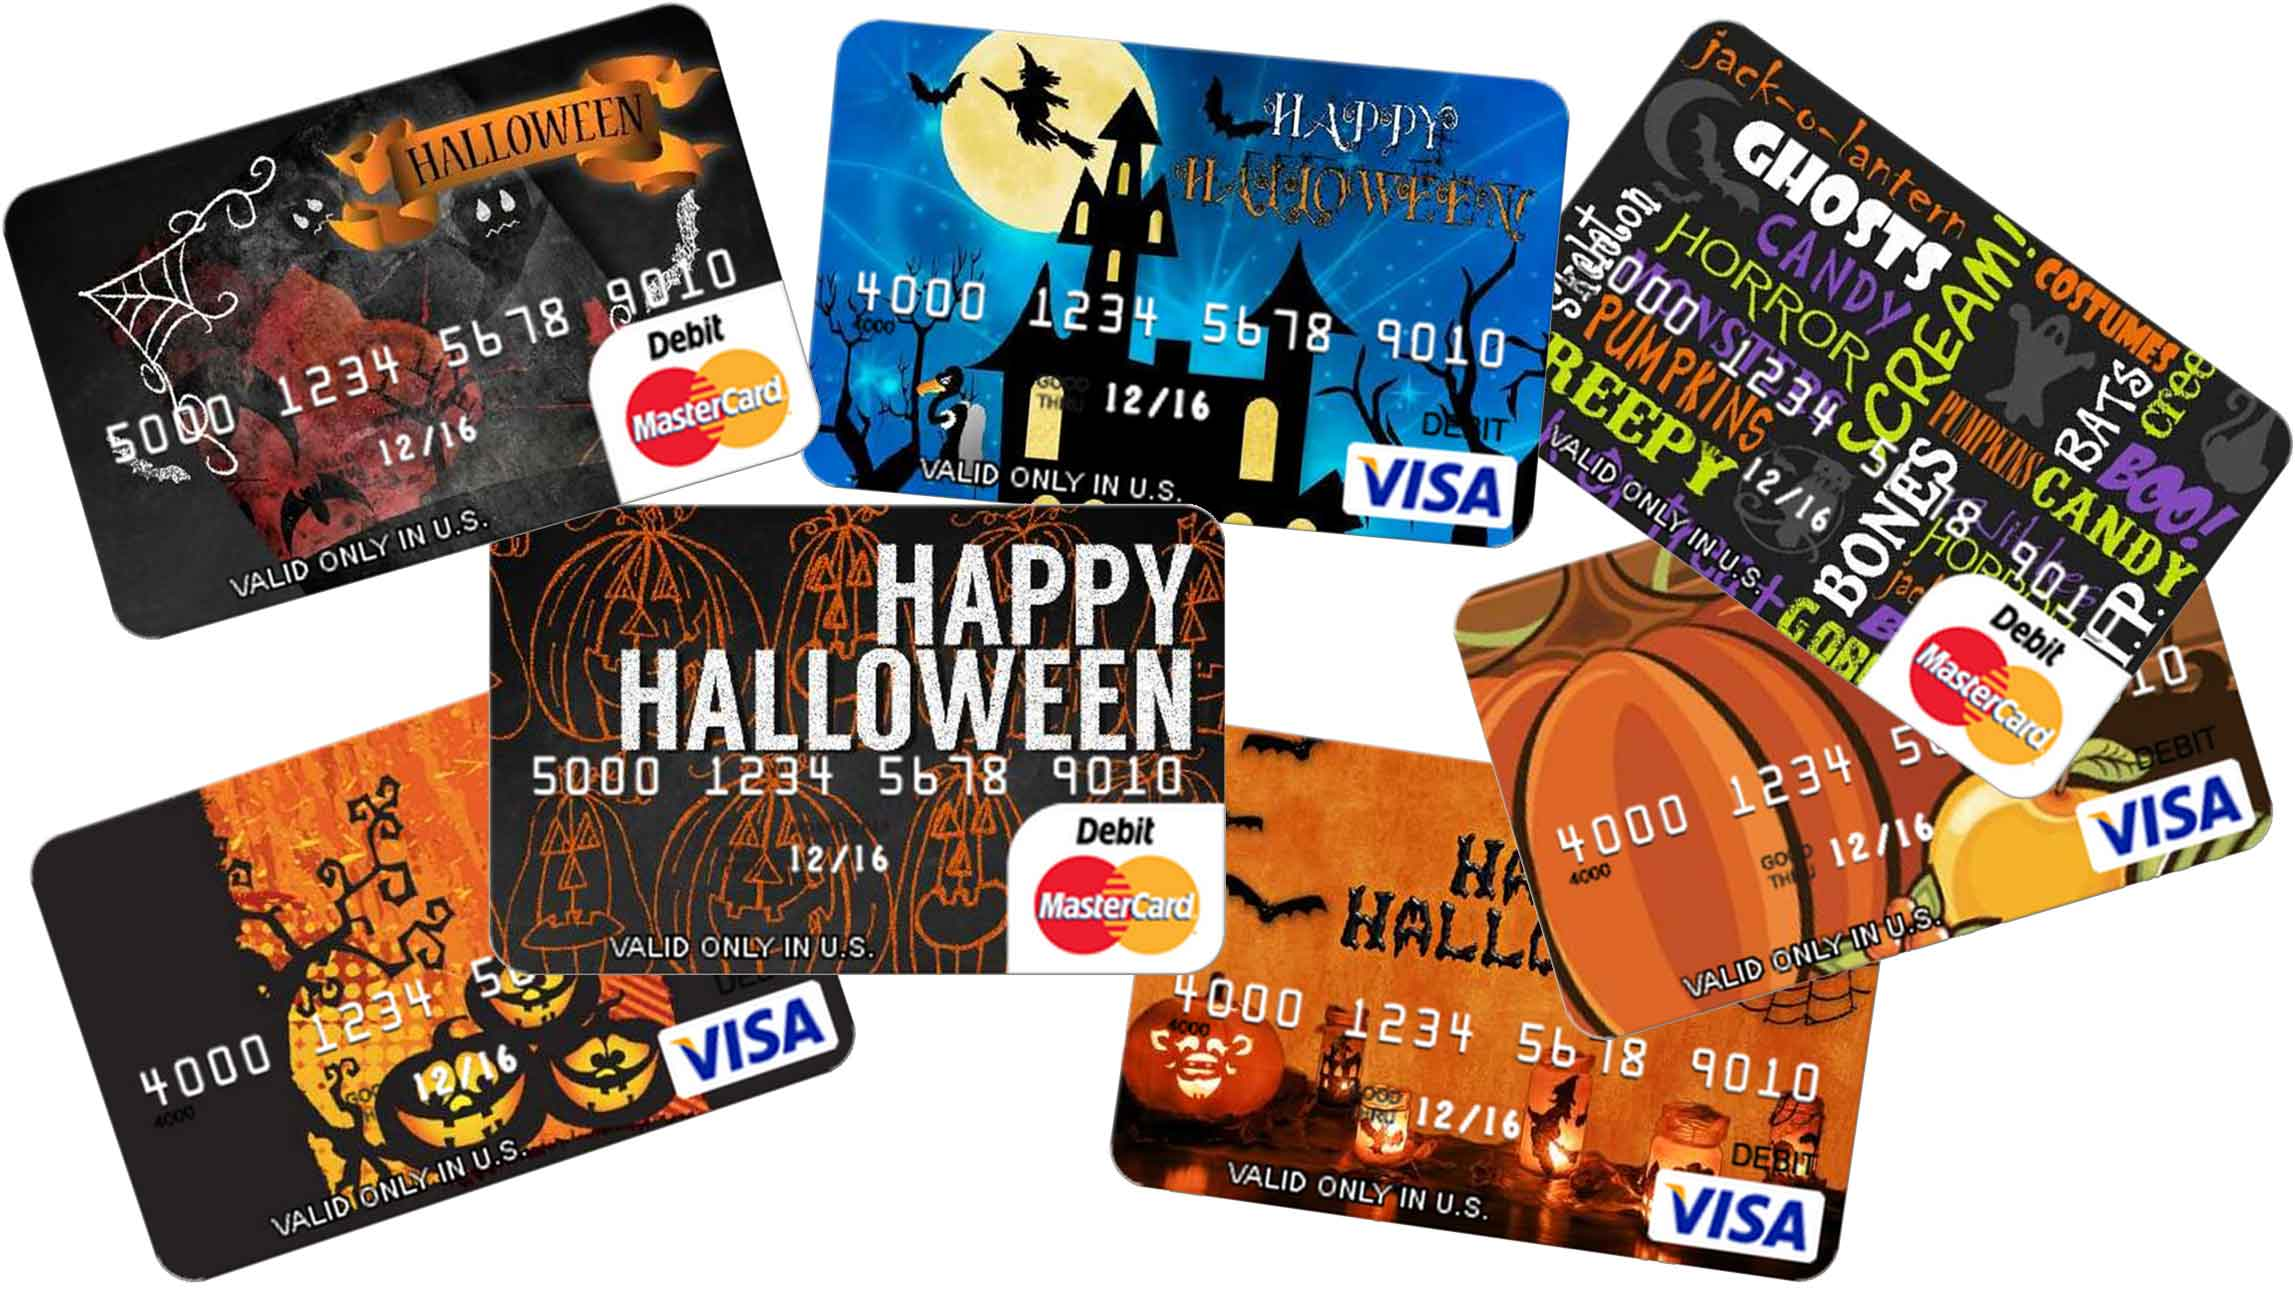 Are Gift Cards Good Halloween Prizes for Kids? | GCG